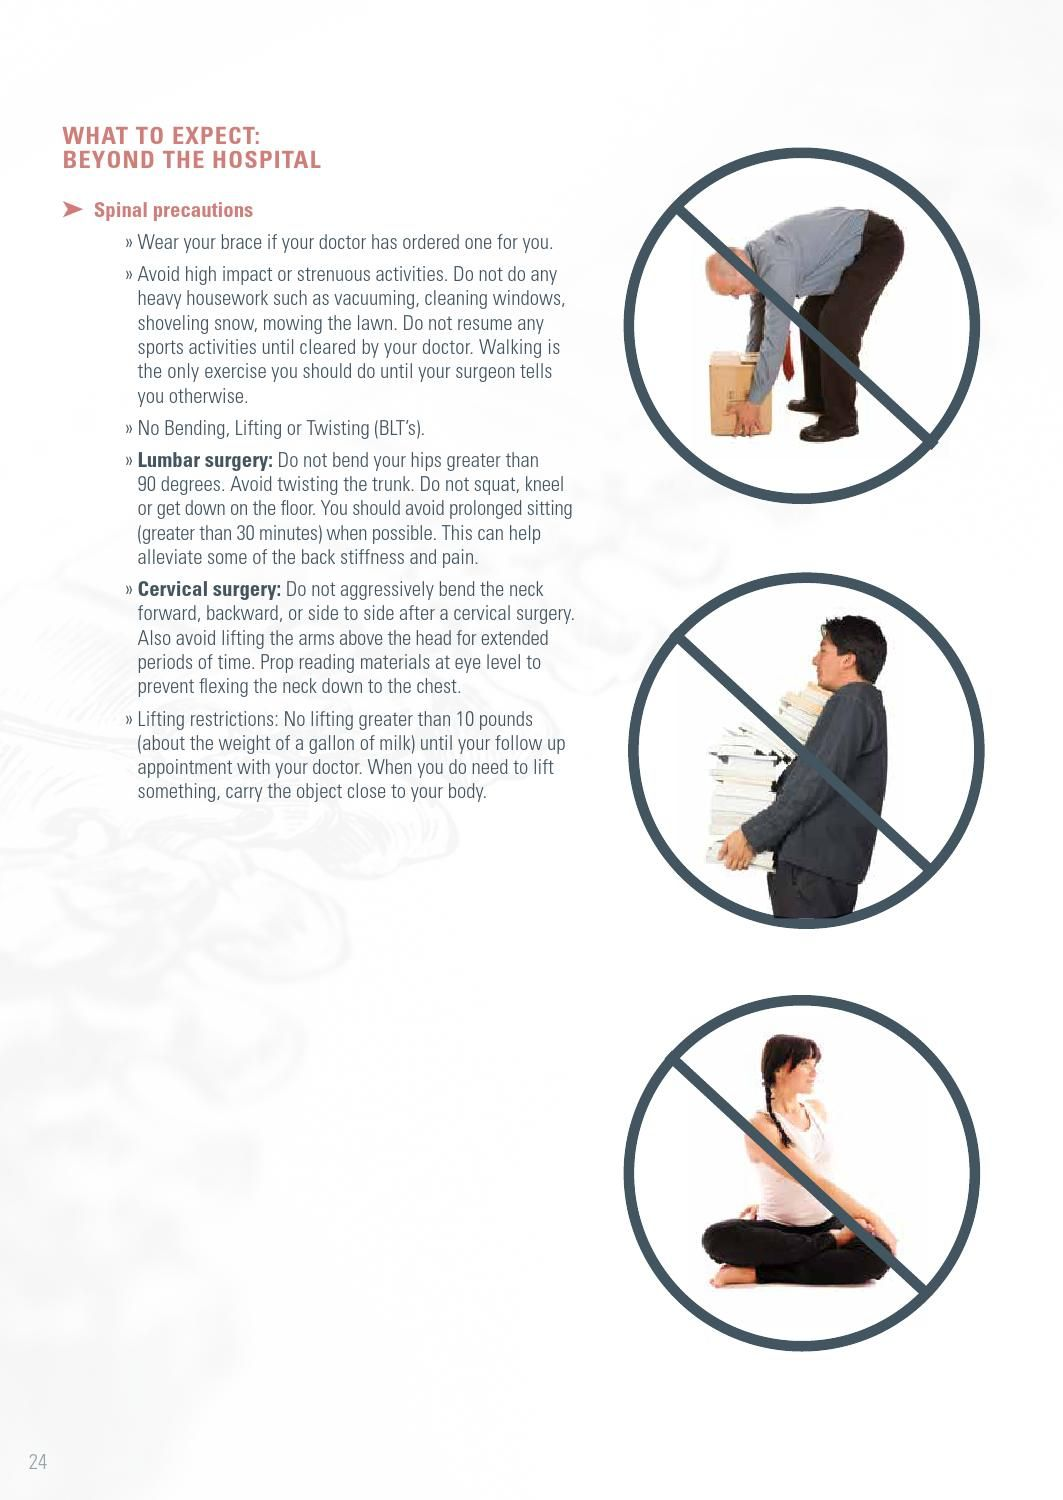 Image result for spinal precautions no bending past